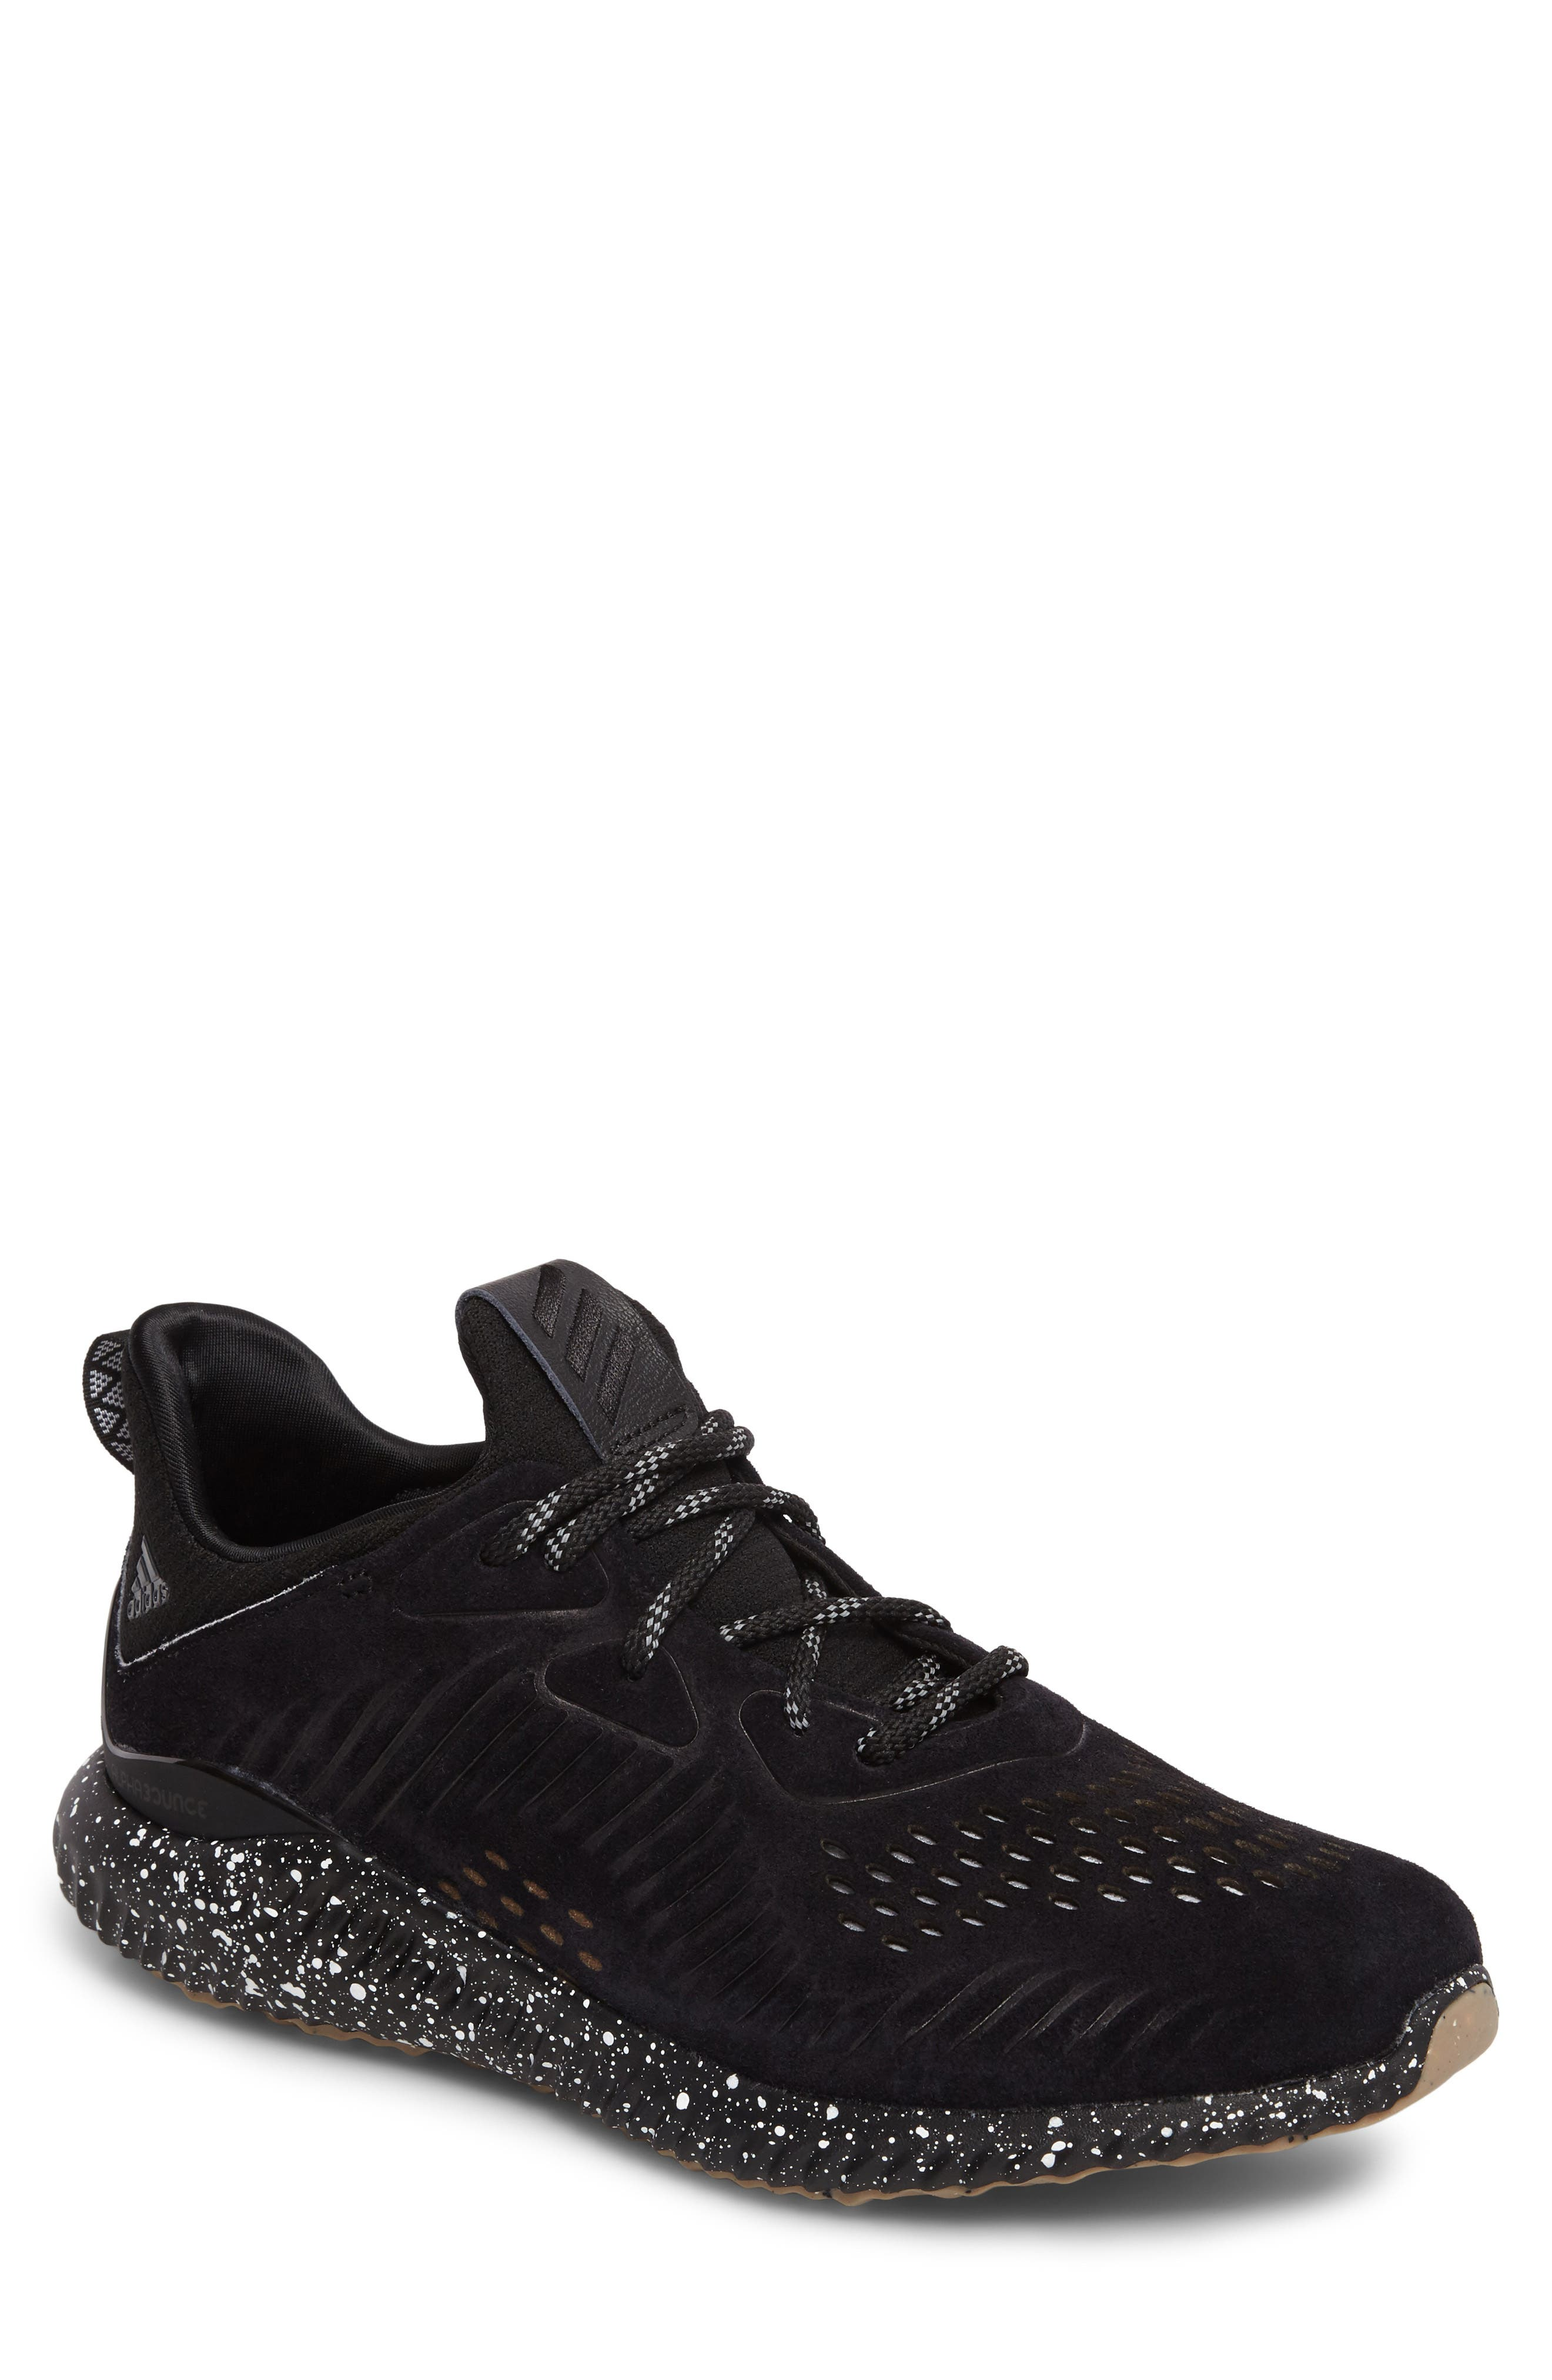 AlphaBounce LEA Running Shoe,                         Main,                         color,